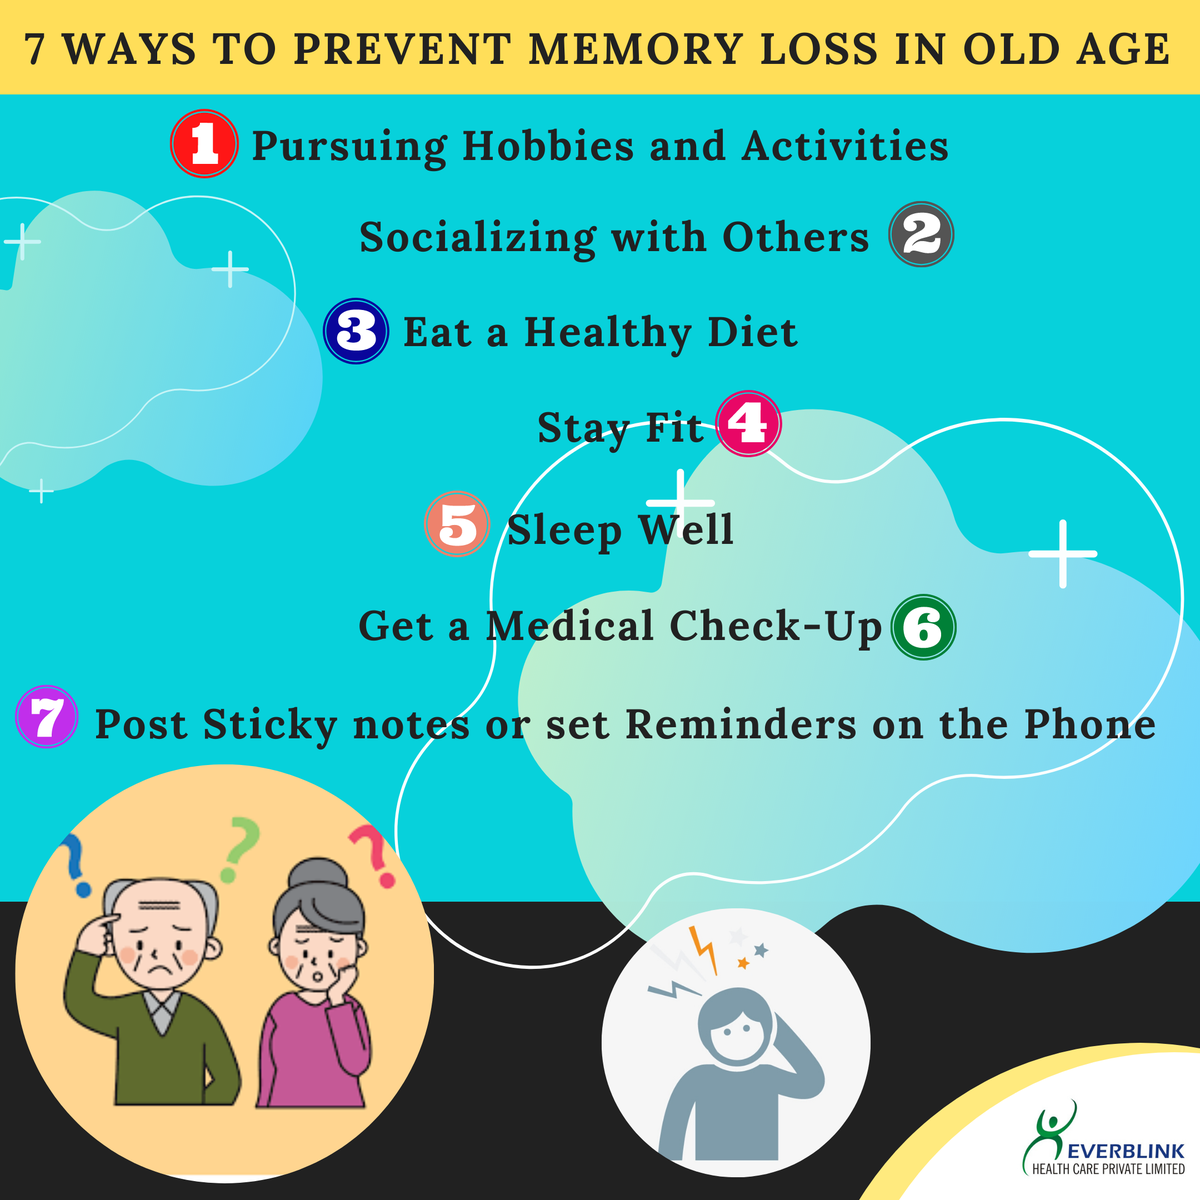 7 Ways to Prevent Memory Loss in Old Age #EverblinkHealthcare #elderlycare  #care pic.twitter.com/qpJOR5ObXd